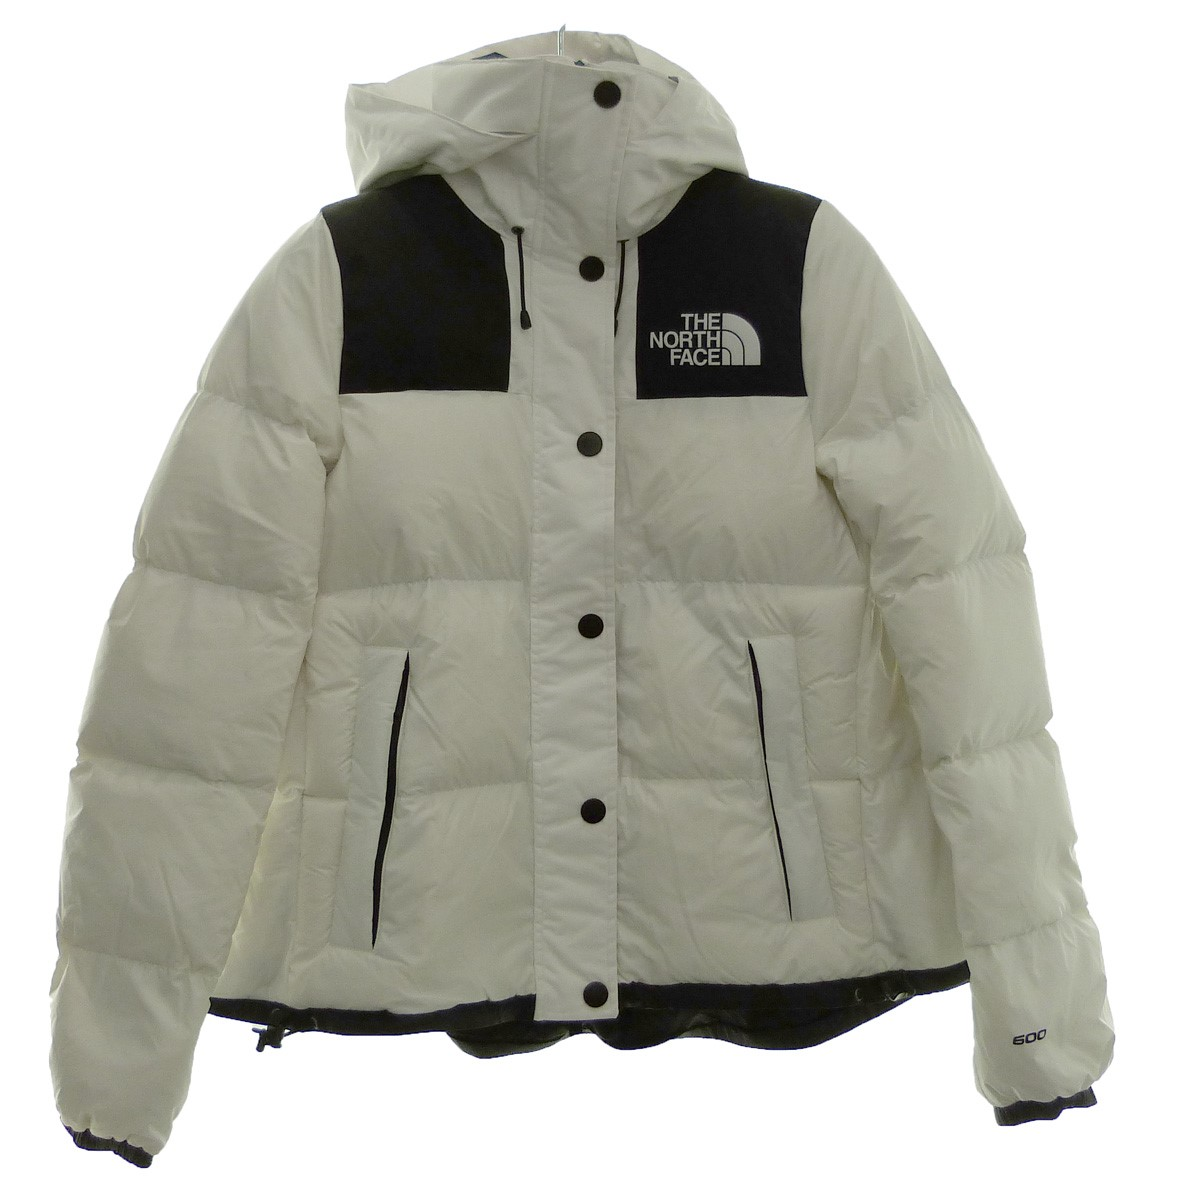 Sacai X THE NORTH FACE 17AW down jacket white X black size: S